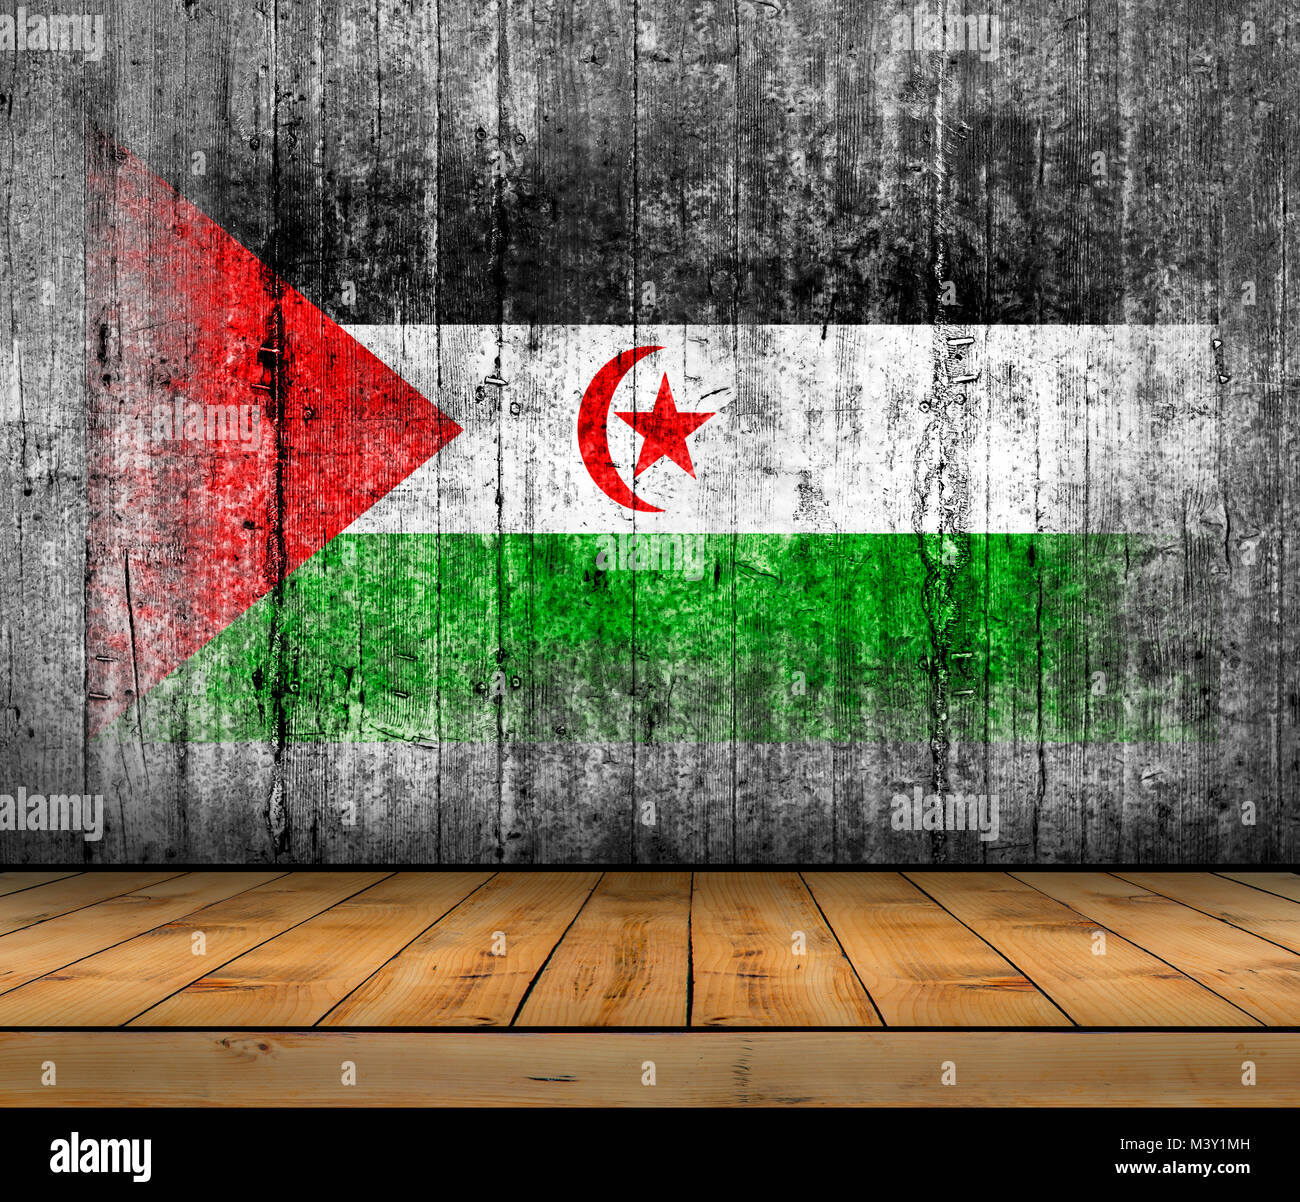 Sahrawi Arab Democratic Republic flag painted on concrete with wooden floor - Stock Image